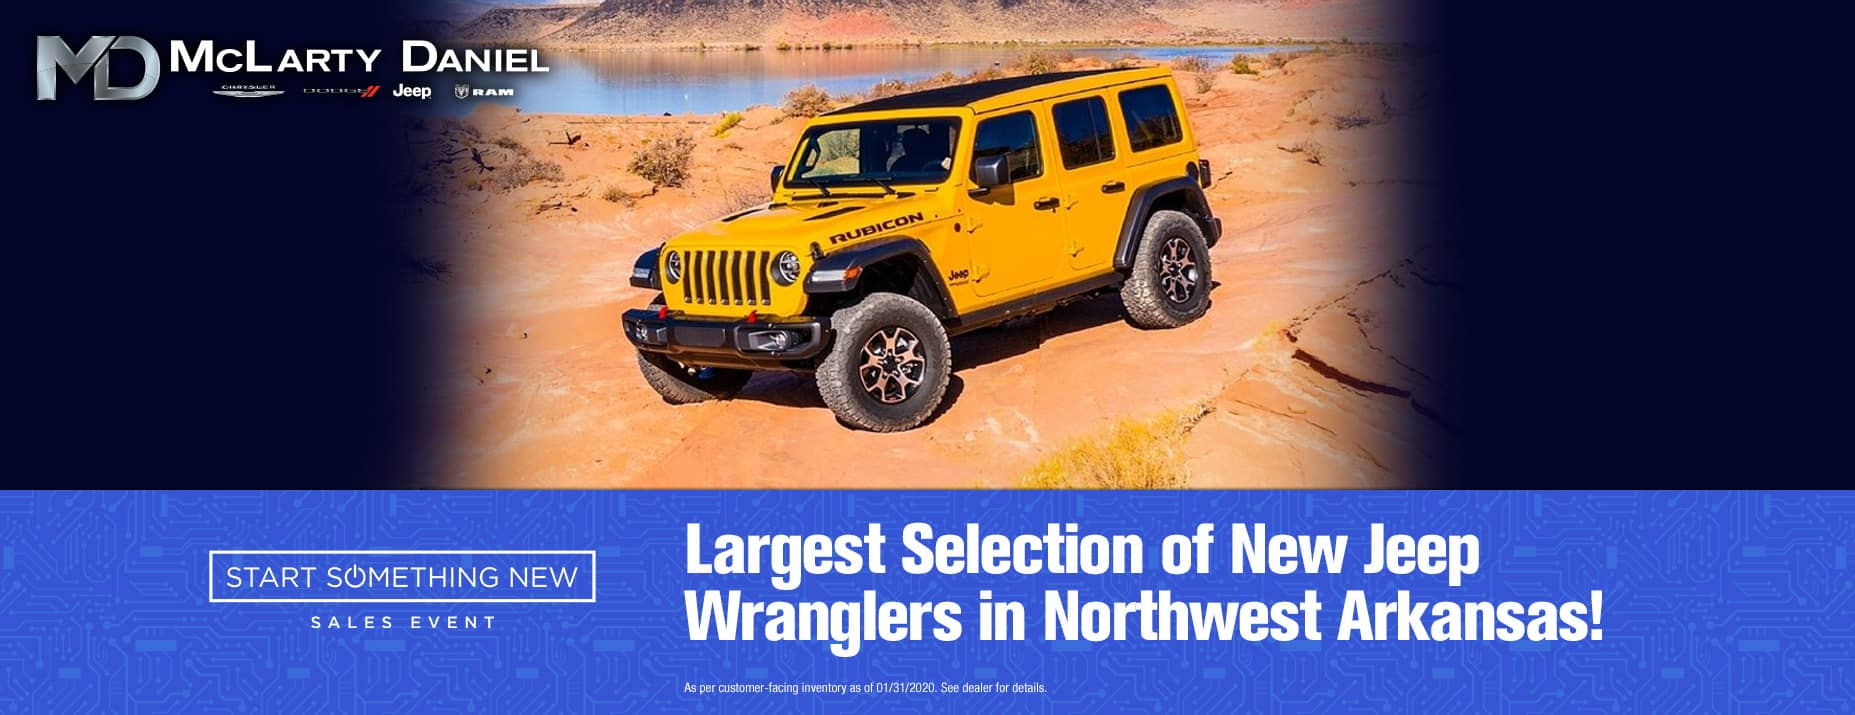 Largest Selection of New Jeep Wranglers in Northwest Arkansas!